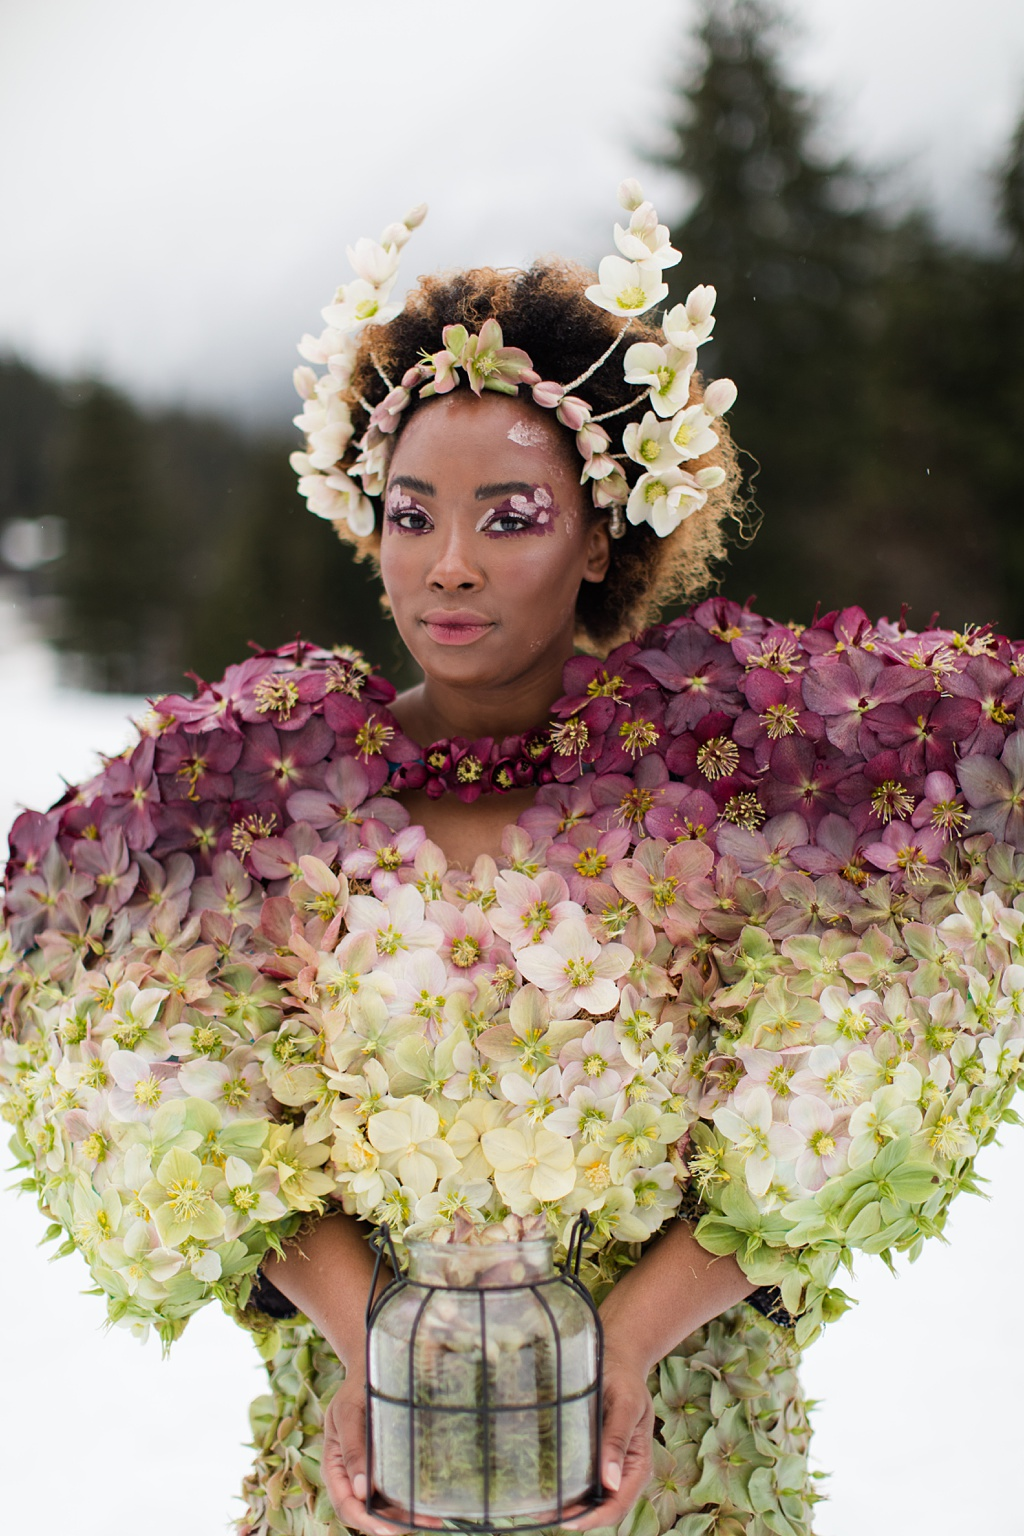 A woman in a dress made of hellebores with a crown made of hellebores in the snow